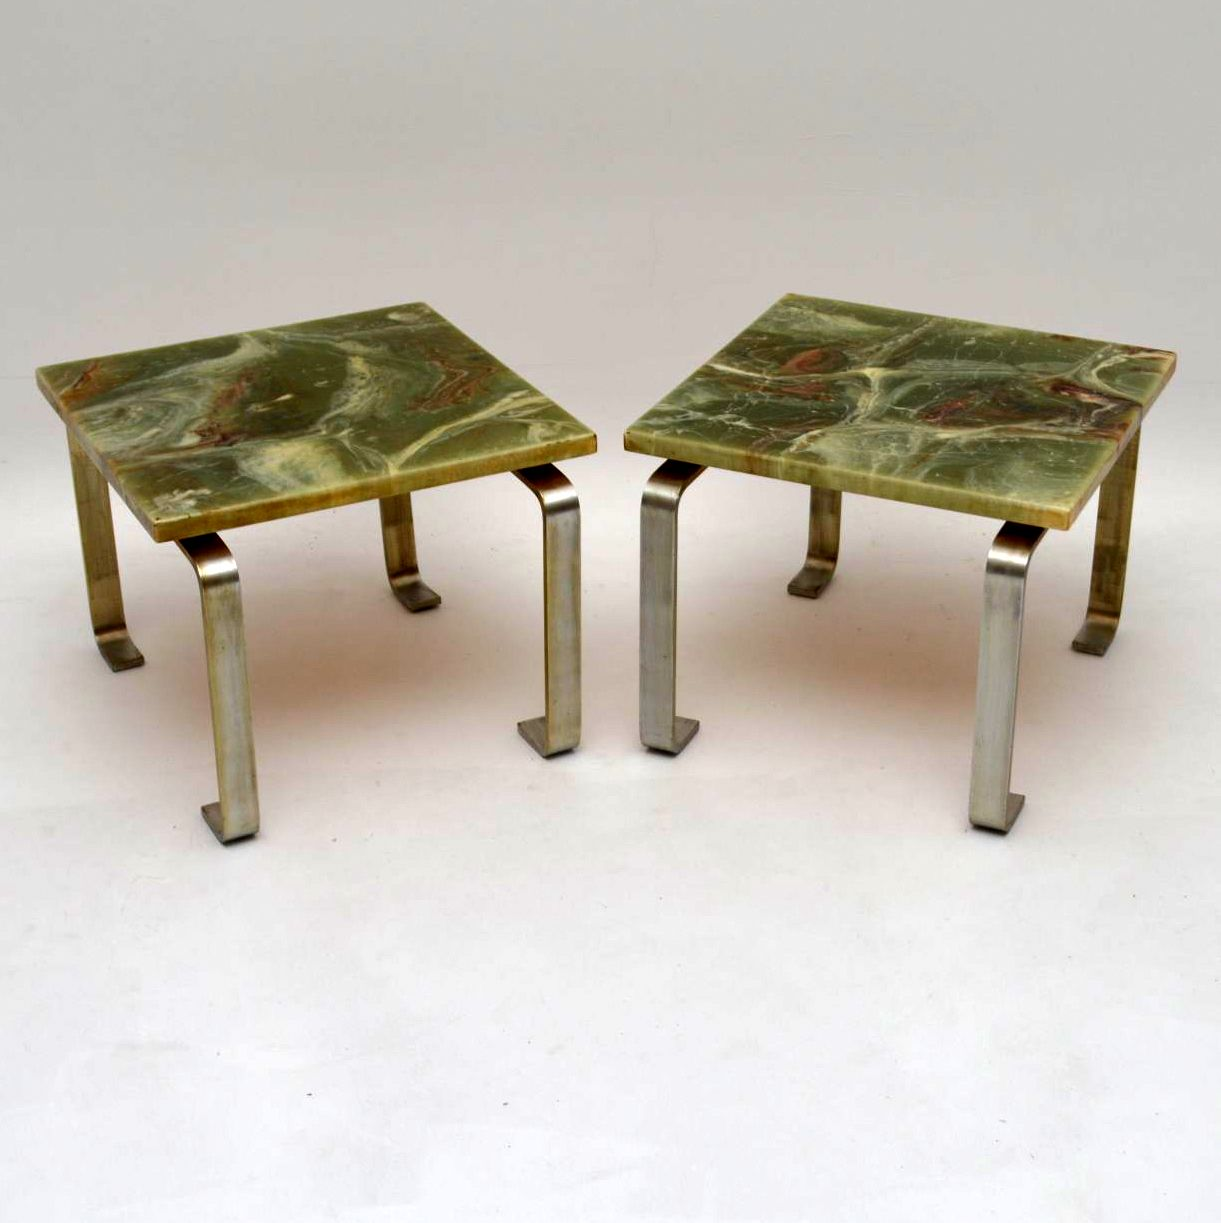 Pair Of Retro Steel Marble Effect Side Tables Vintage 1960 S